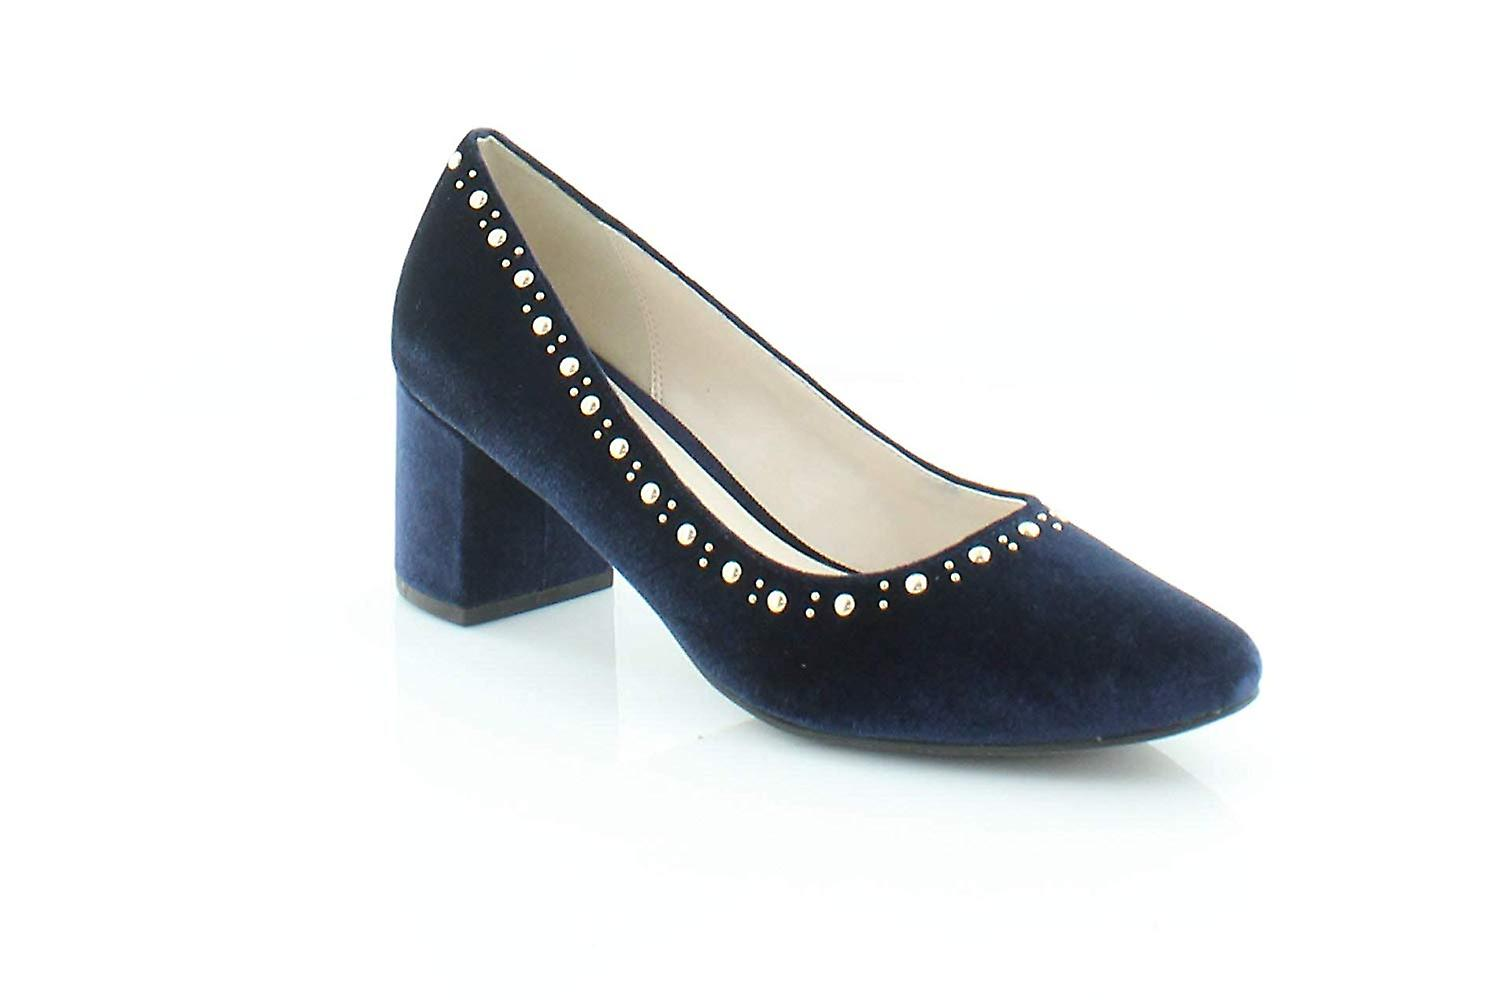 Cole Haan Womens Justine Suede Closed Toe Classic Pumps JKF4N